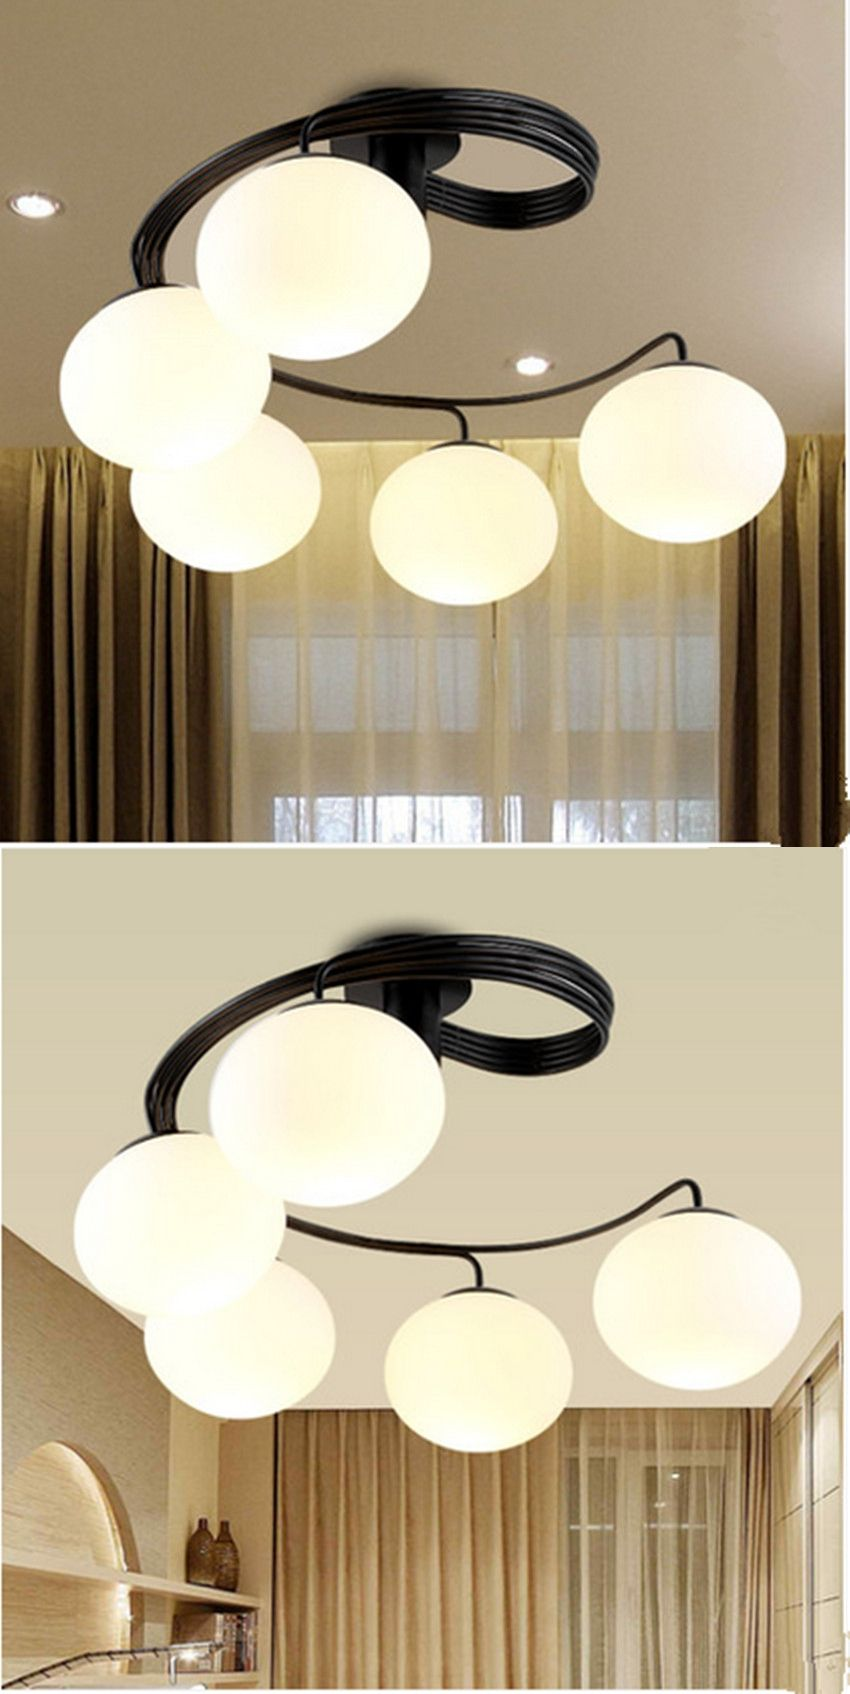 Cozy Bedroom Modern Minimalist Led Ceiling Lights Stylish Restaurant Kids Room Lighting Study Children Indoor